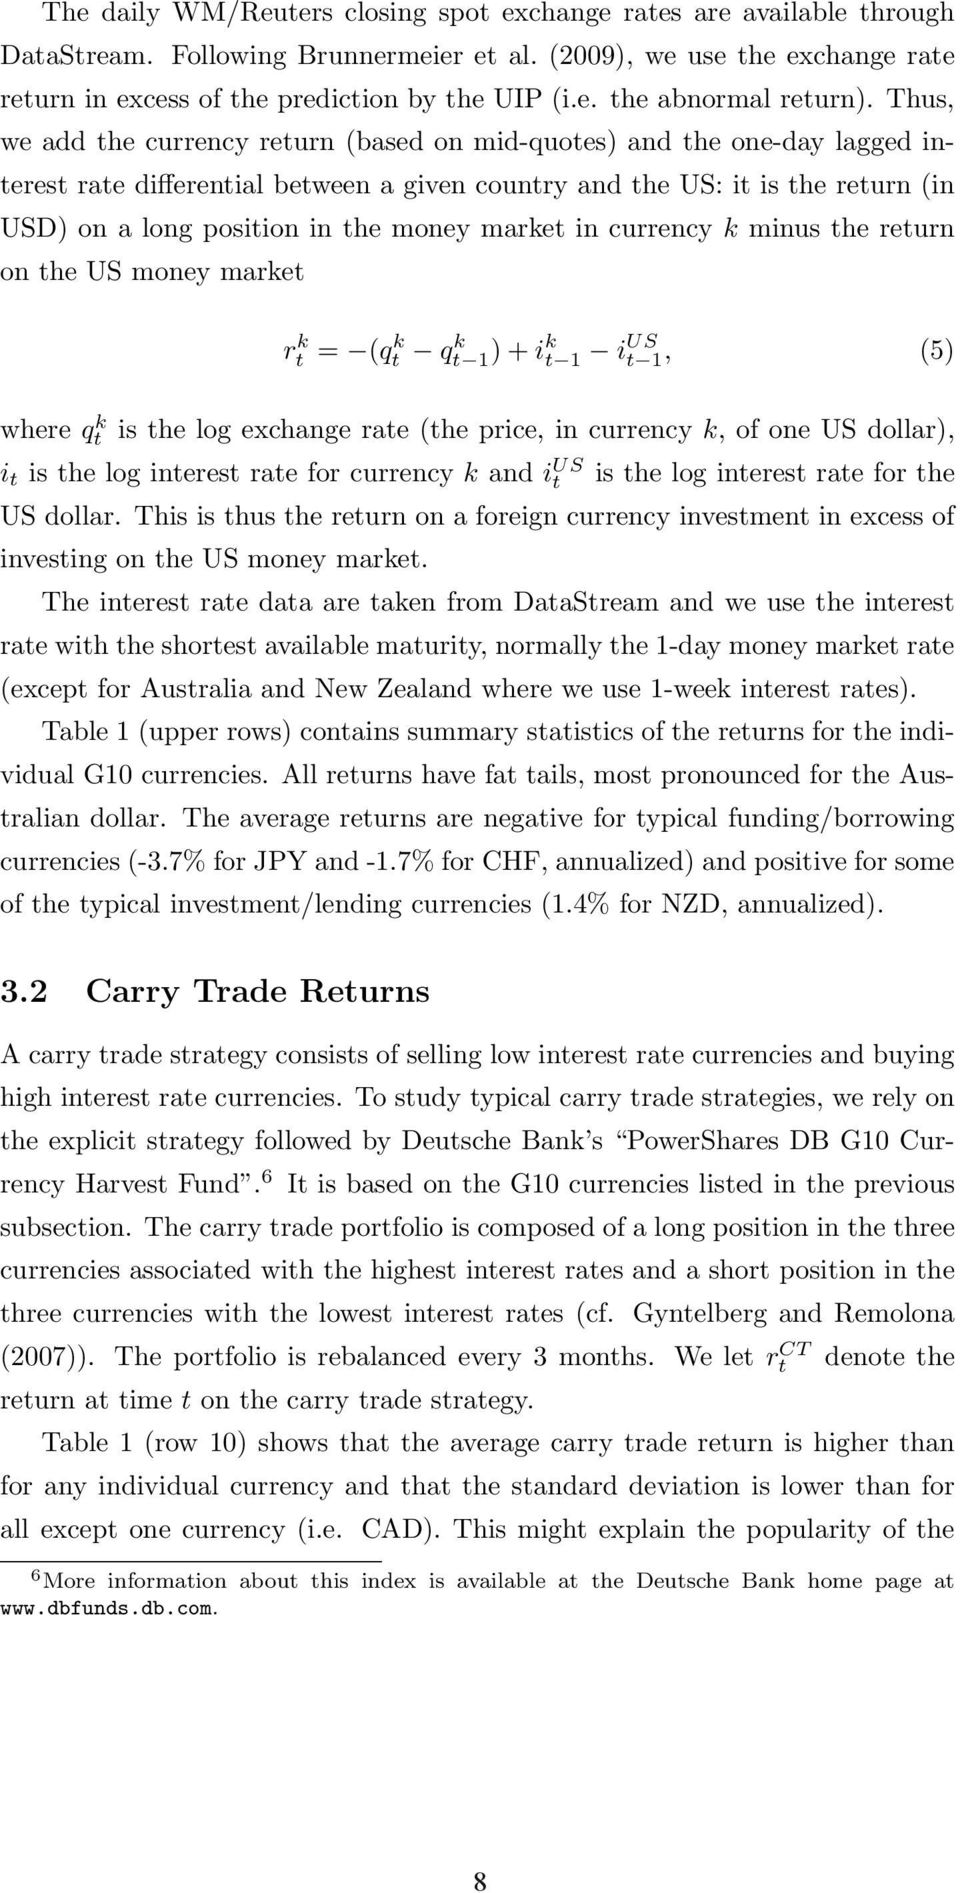 market in currency k minus the return on the US money market r k t = (q k t q k t 1)+i k t 1 i US t 1, (5) where qt k is the log exchange rate (the price, in currency k, of one US dollar), i t is the